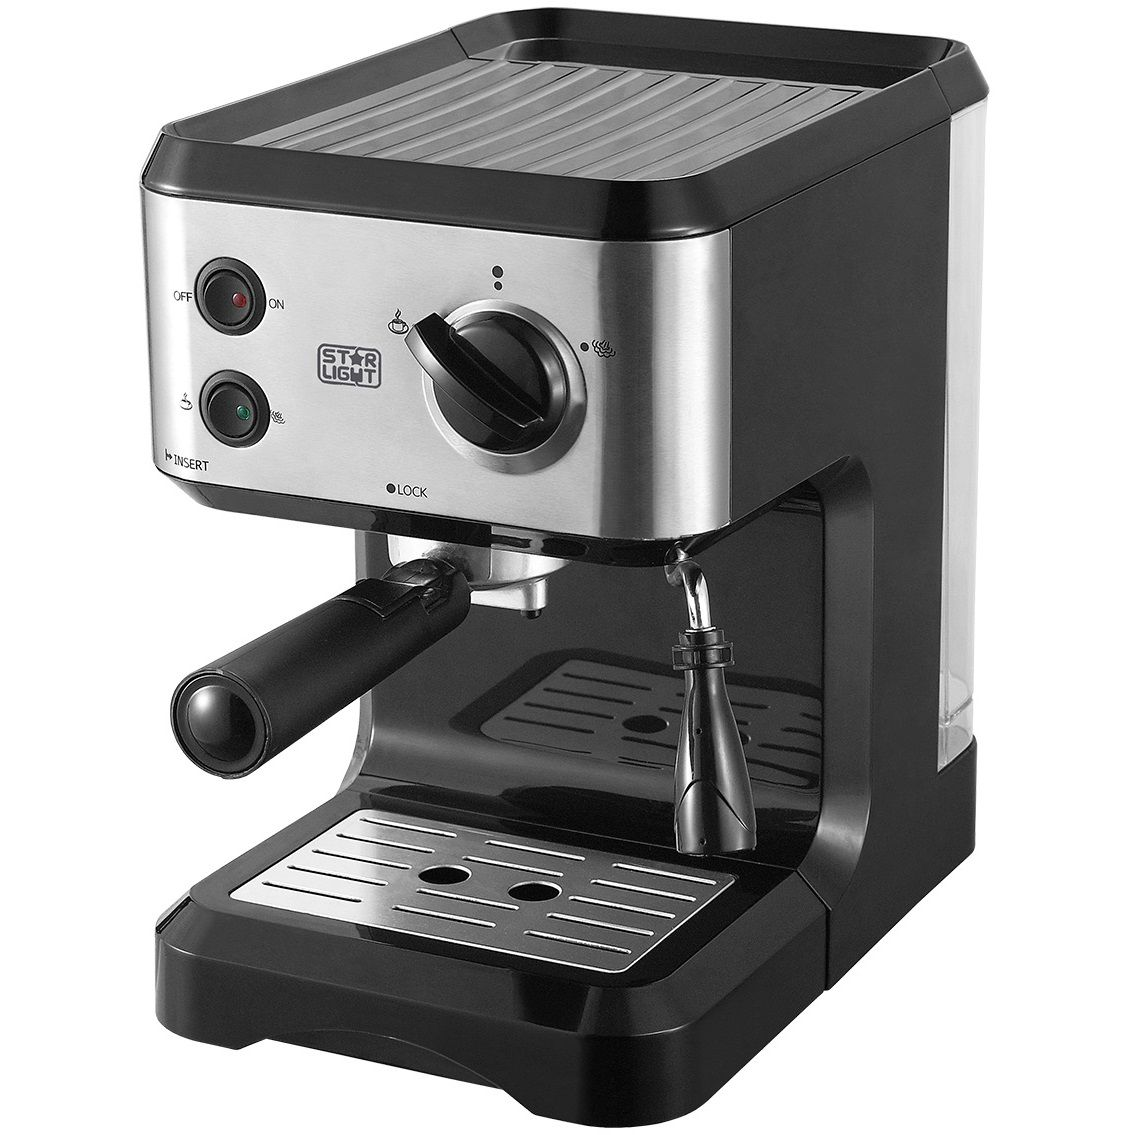 Espressor manual Star-Light EMD-776